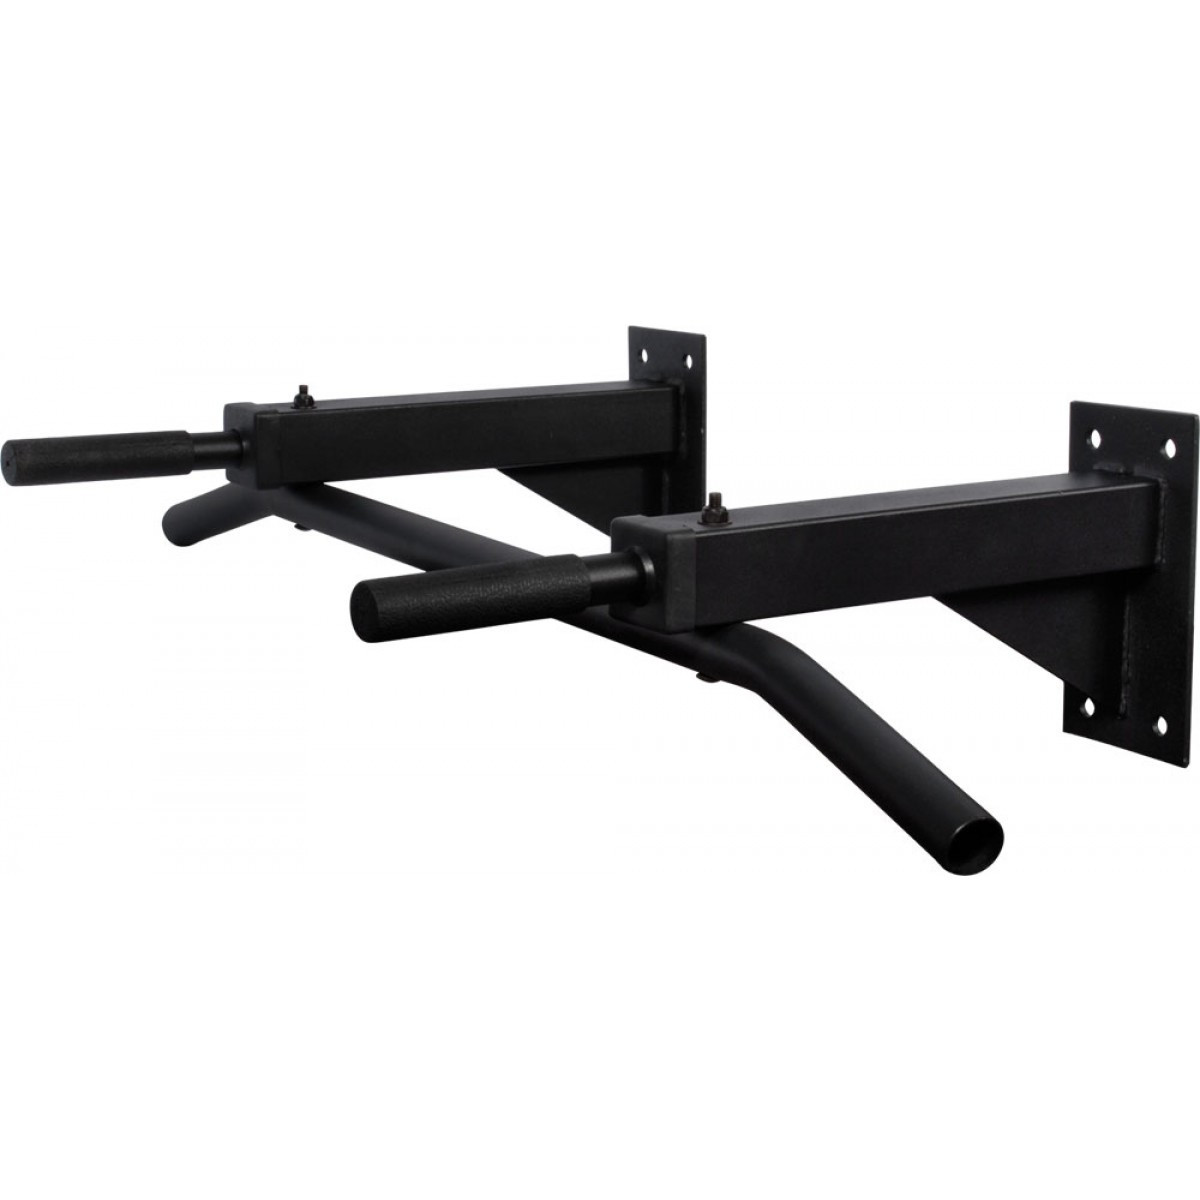 Wall Mount Max Pull Up Chin Up Bar Boxing Store